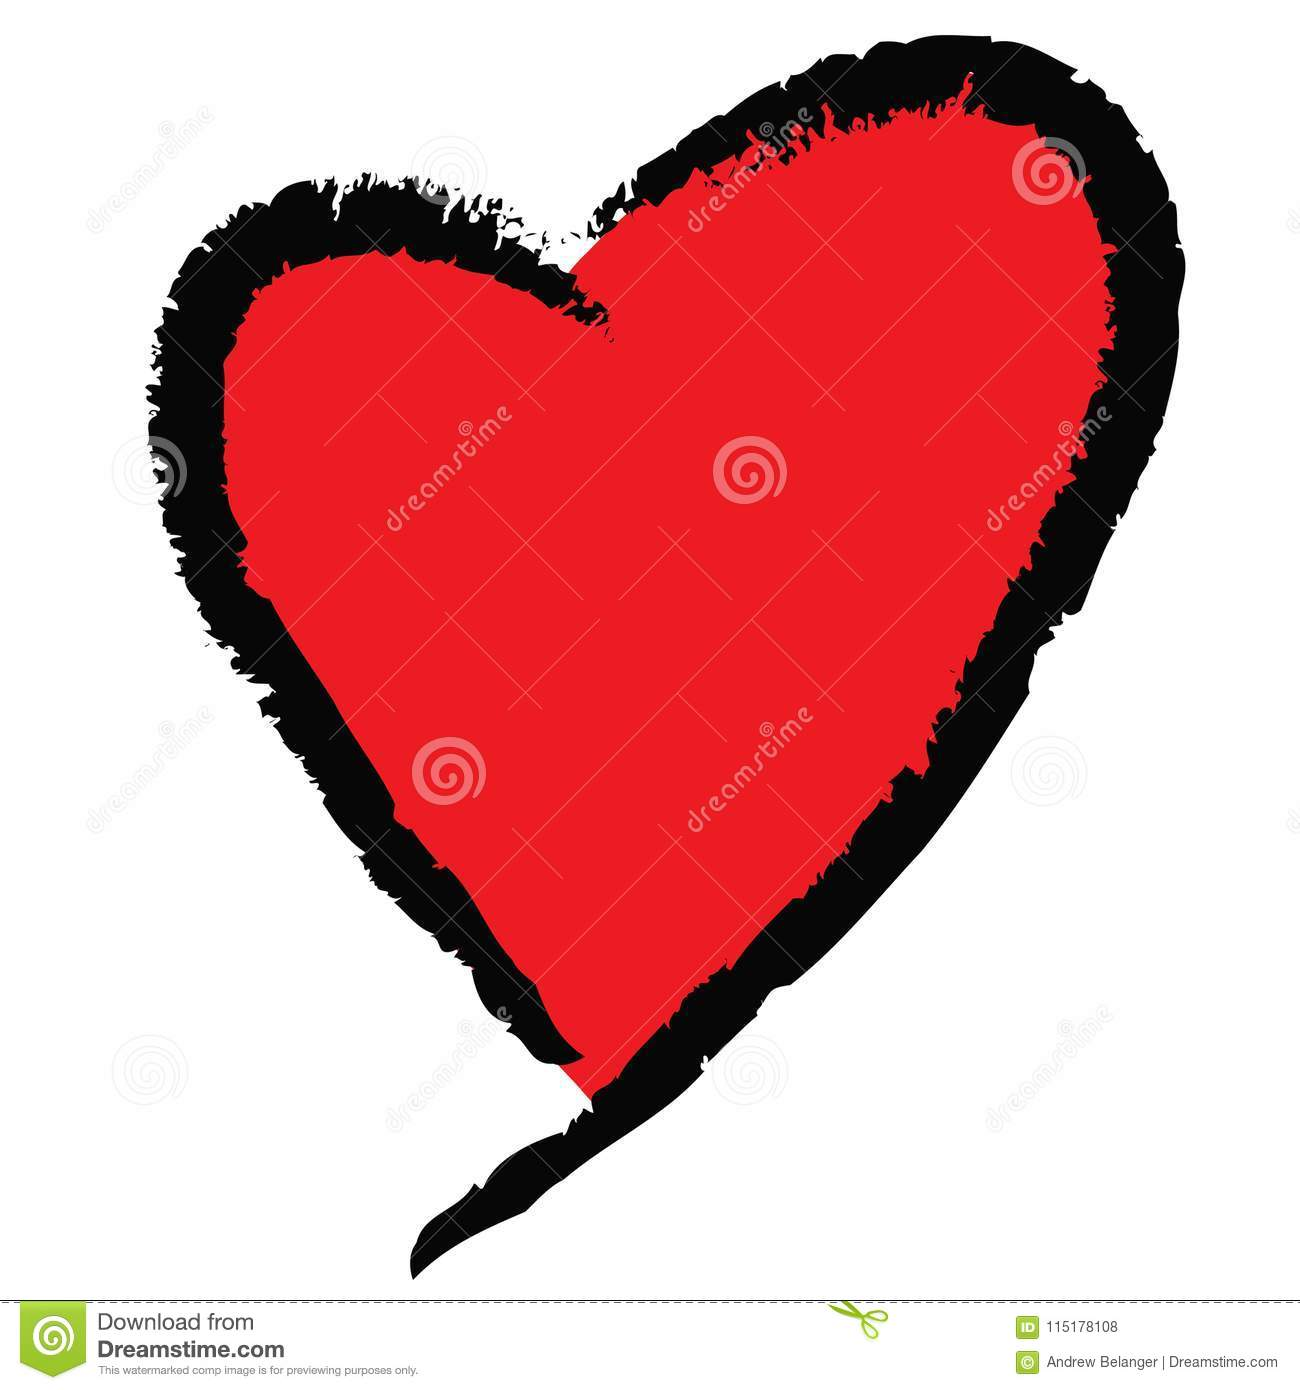 Red Heart With Black Scribble Outline Stock Vector Illustration Of